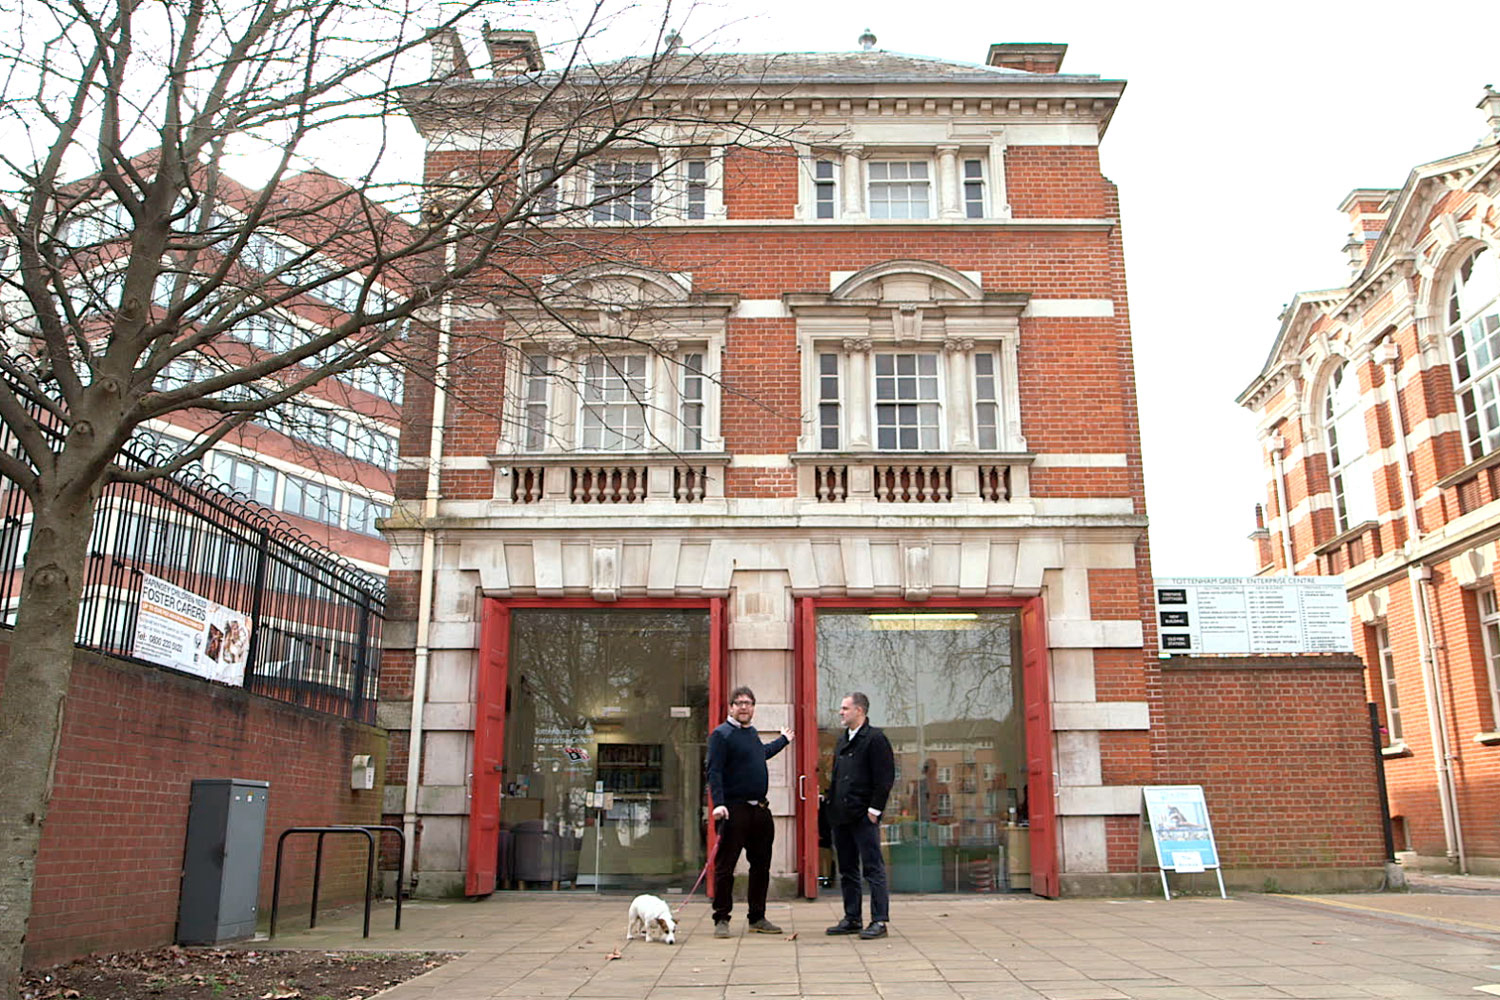 Chicken Town in Tottenham will be housed in a decommissioned Victorian fire station